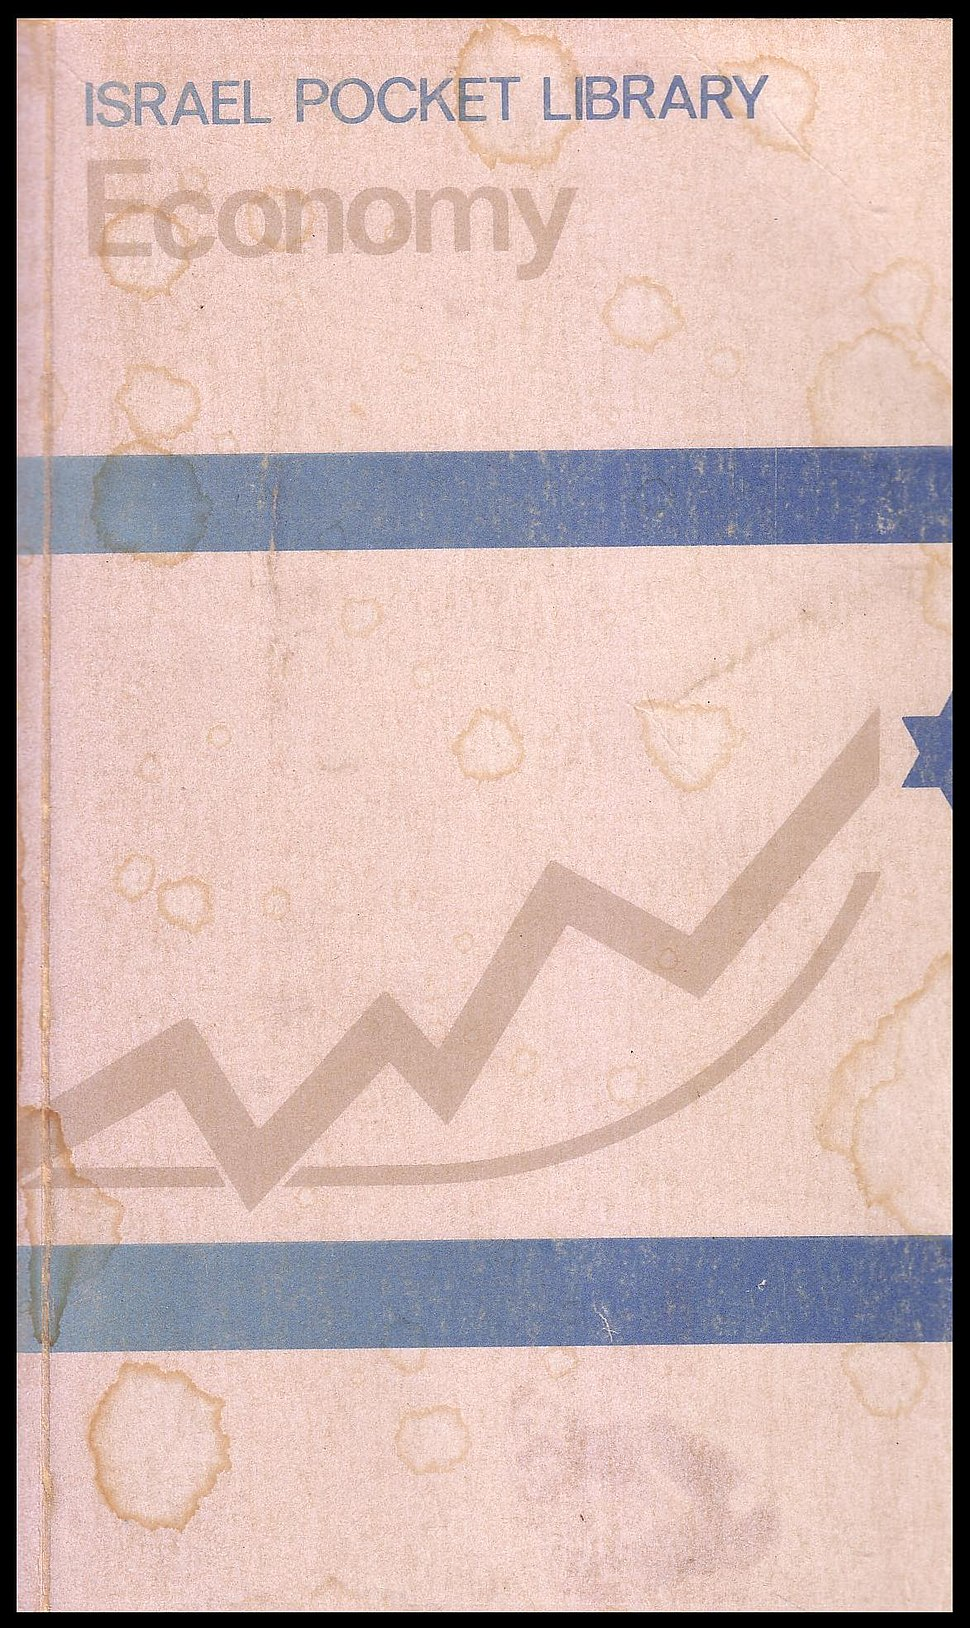 Israel Pocket Library book cover